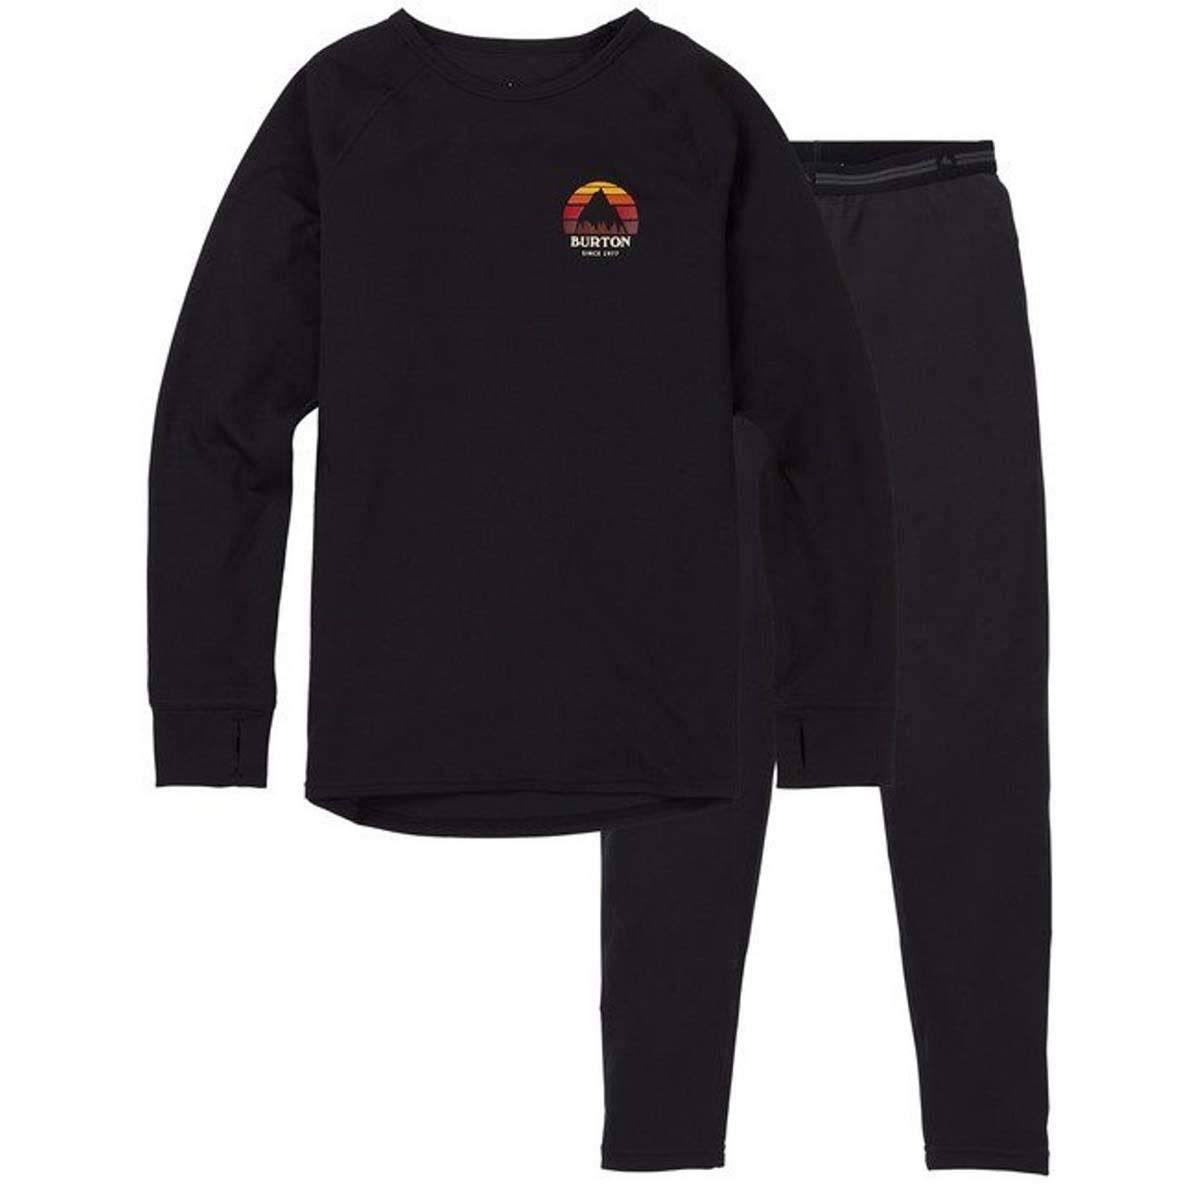 Burton Boy's Lightweight Baselayer Set - True Black, X Small